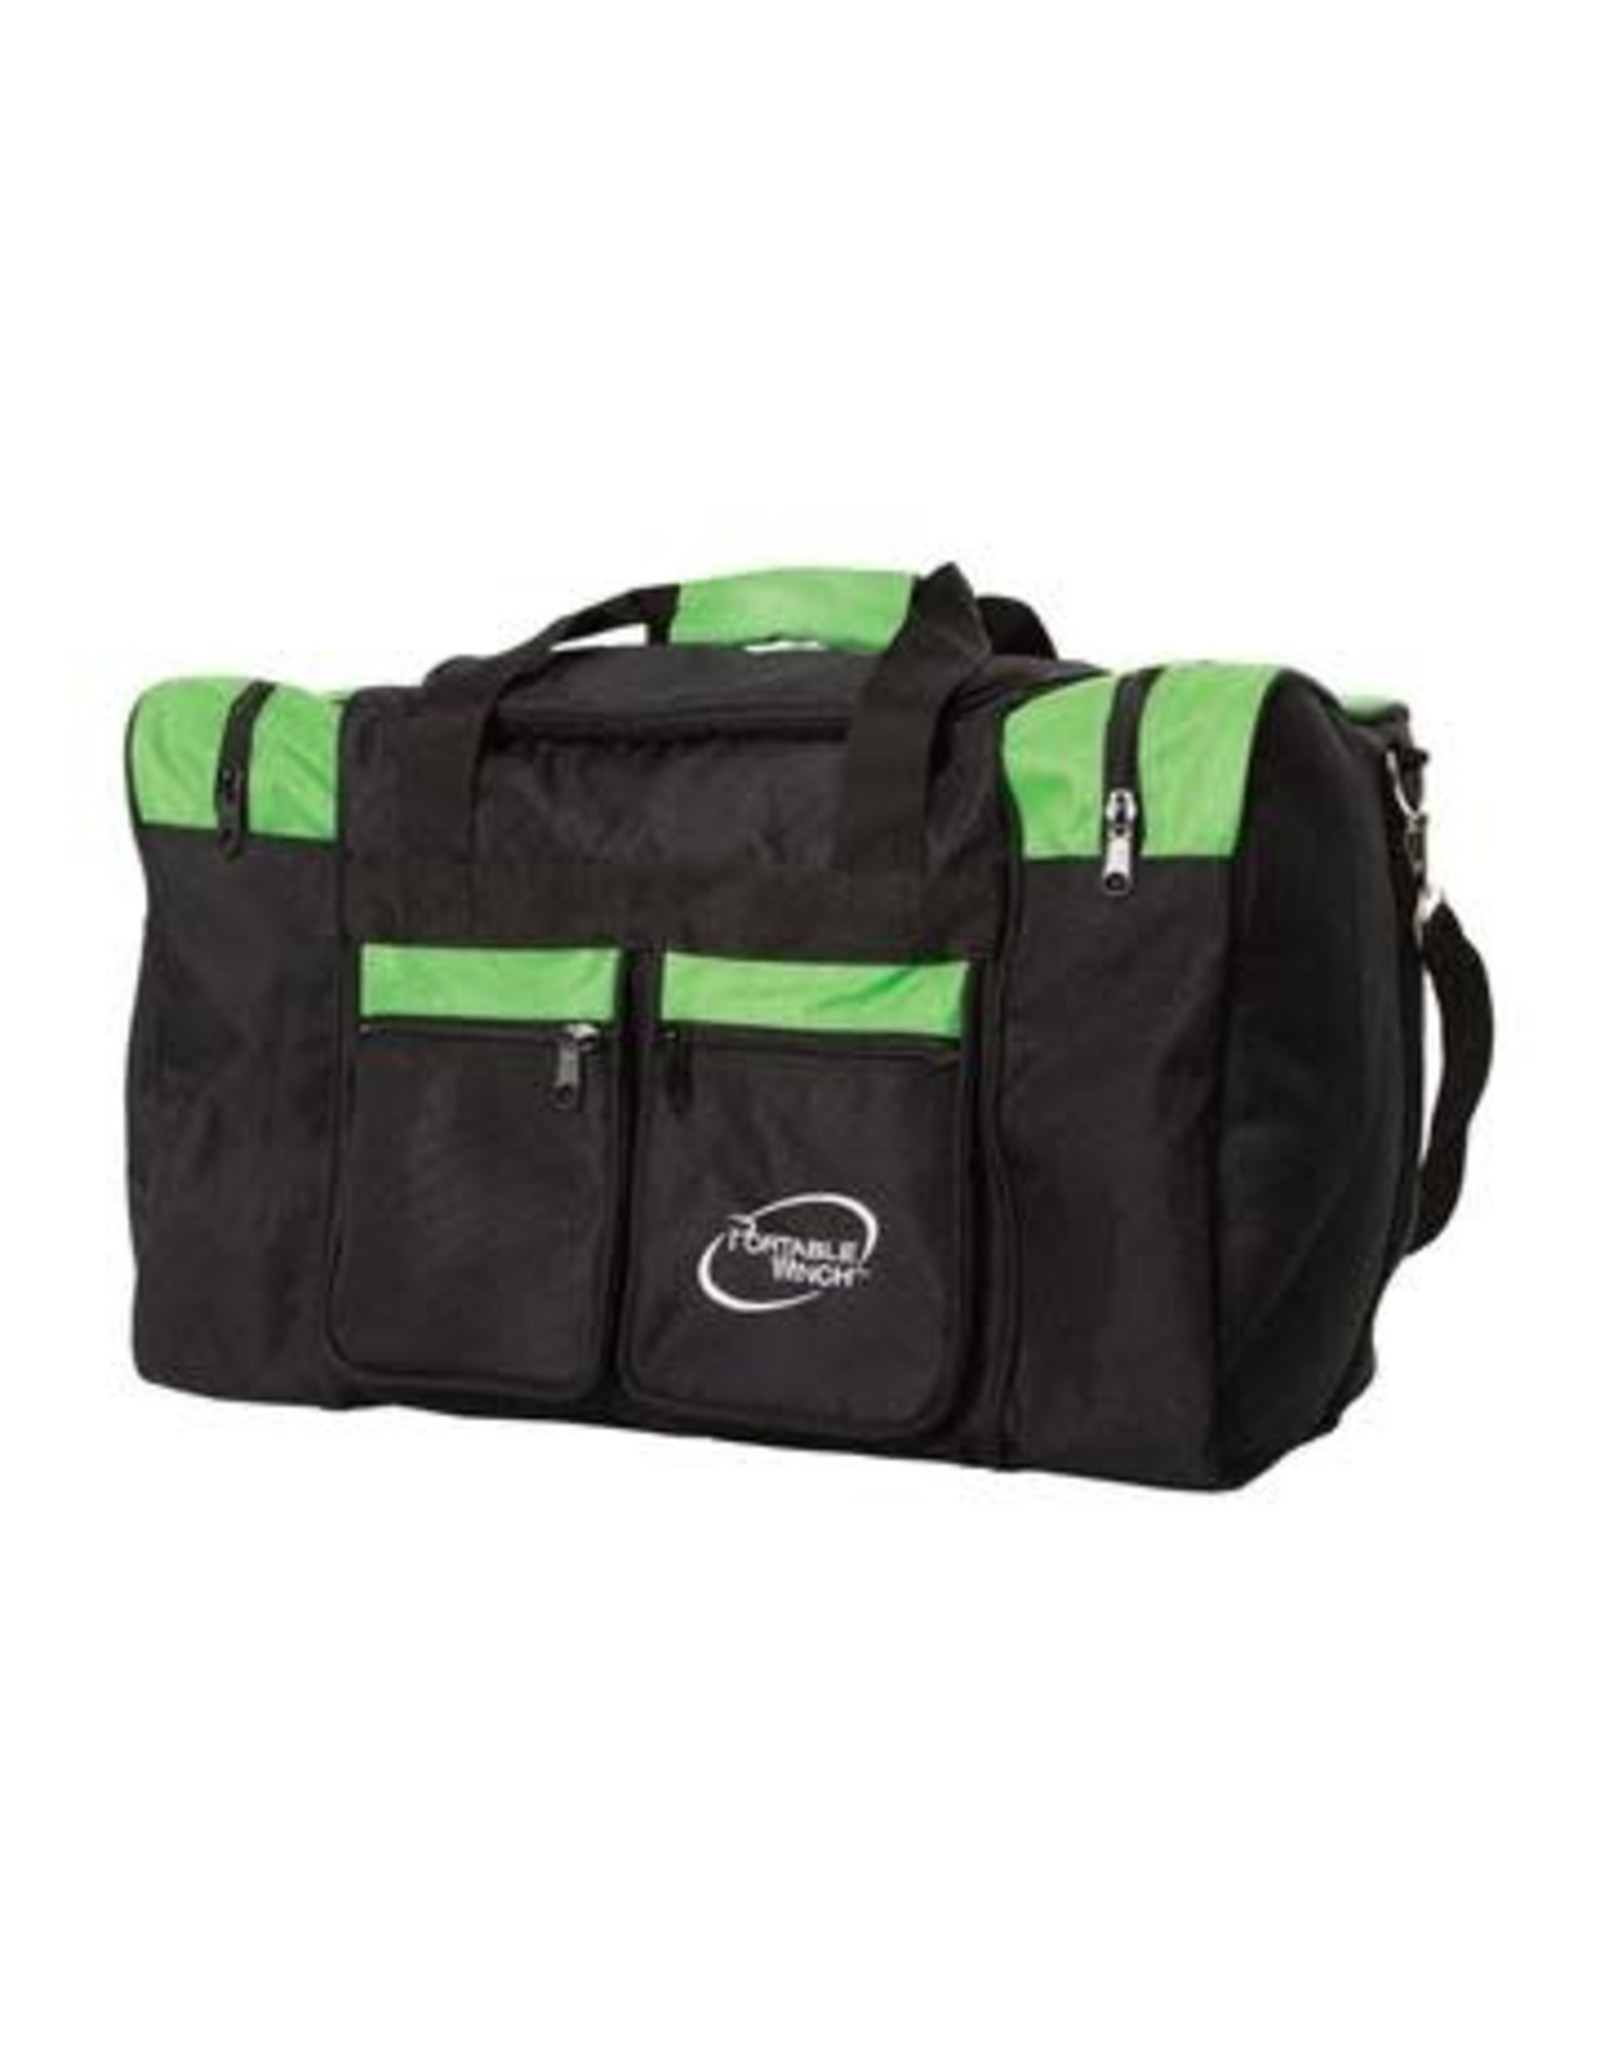 Portable Winch PW TRANSPORT BAG WITH COMPARTMENTS